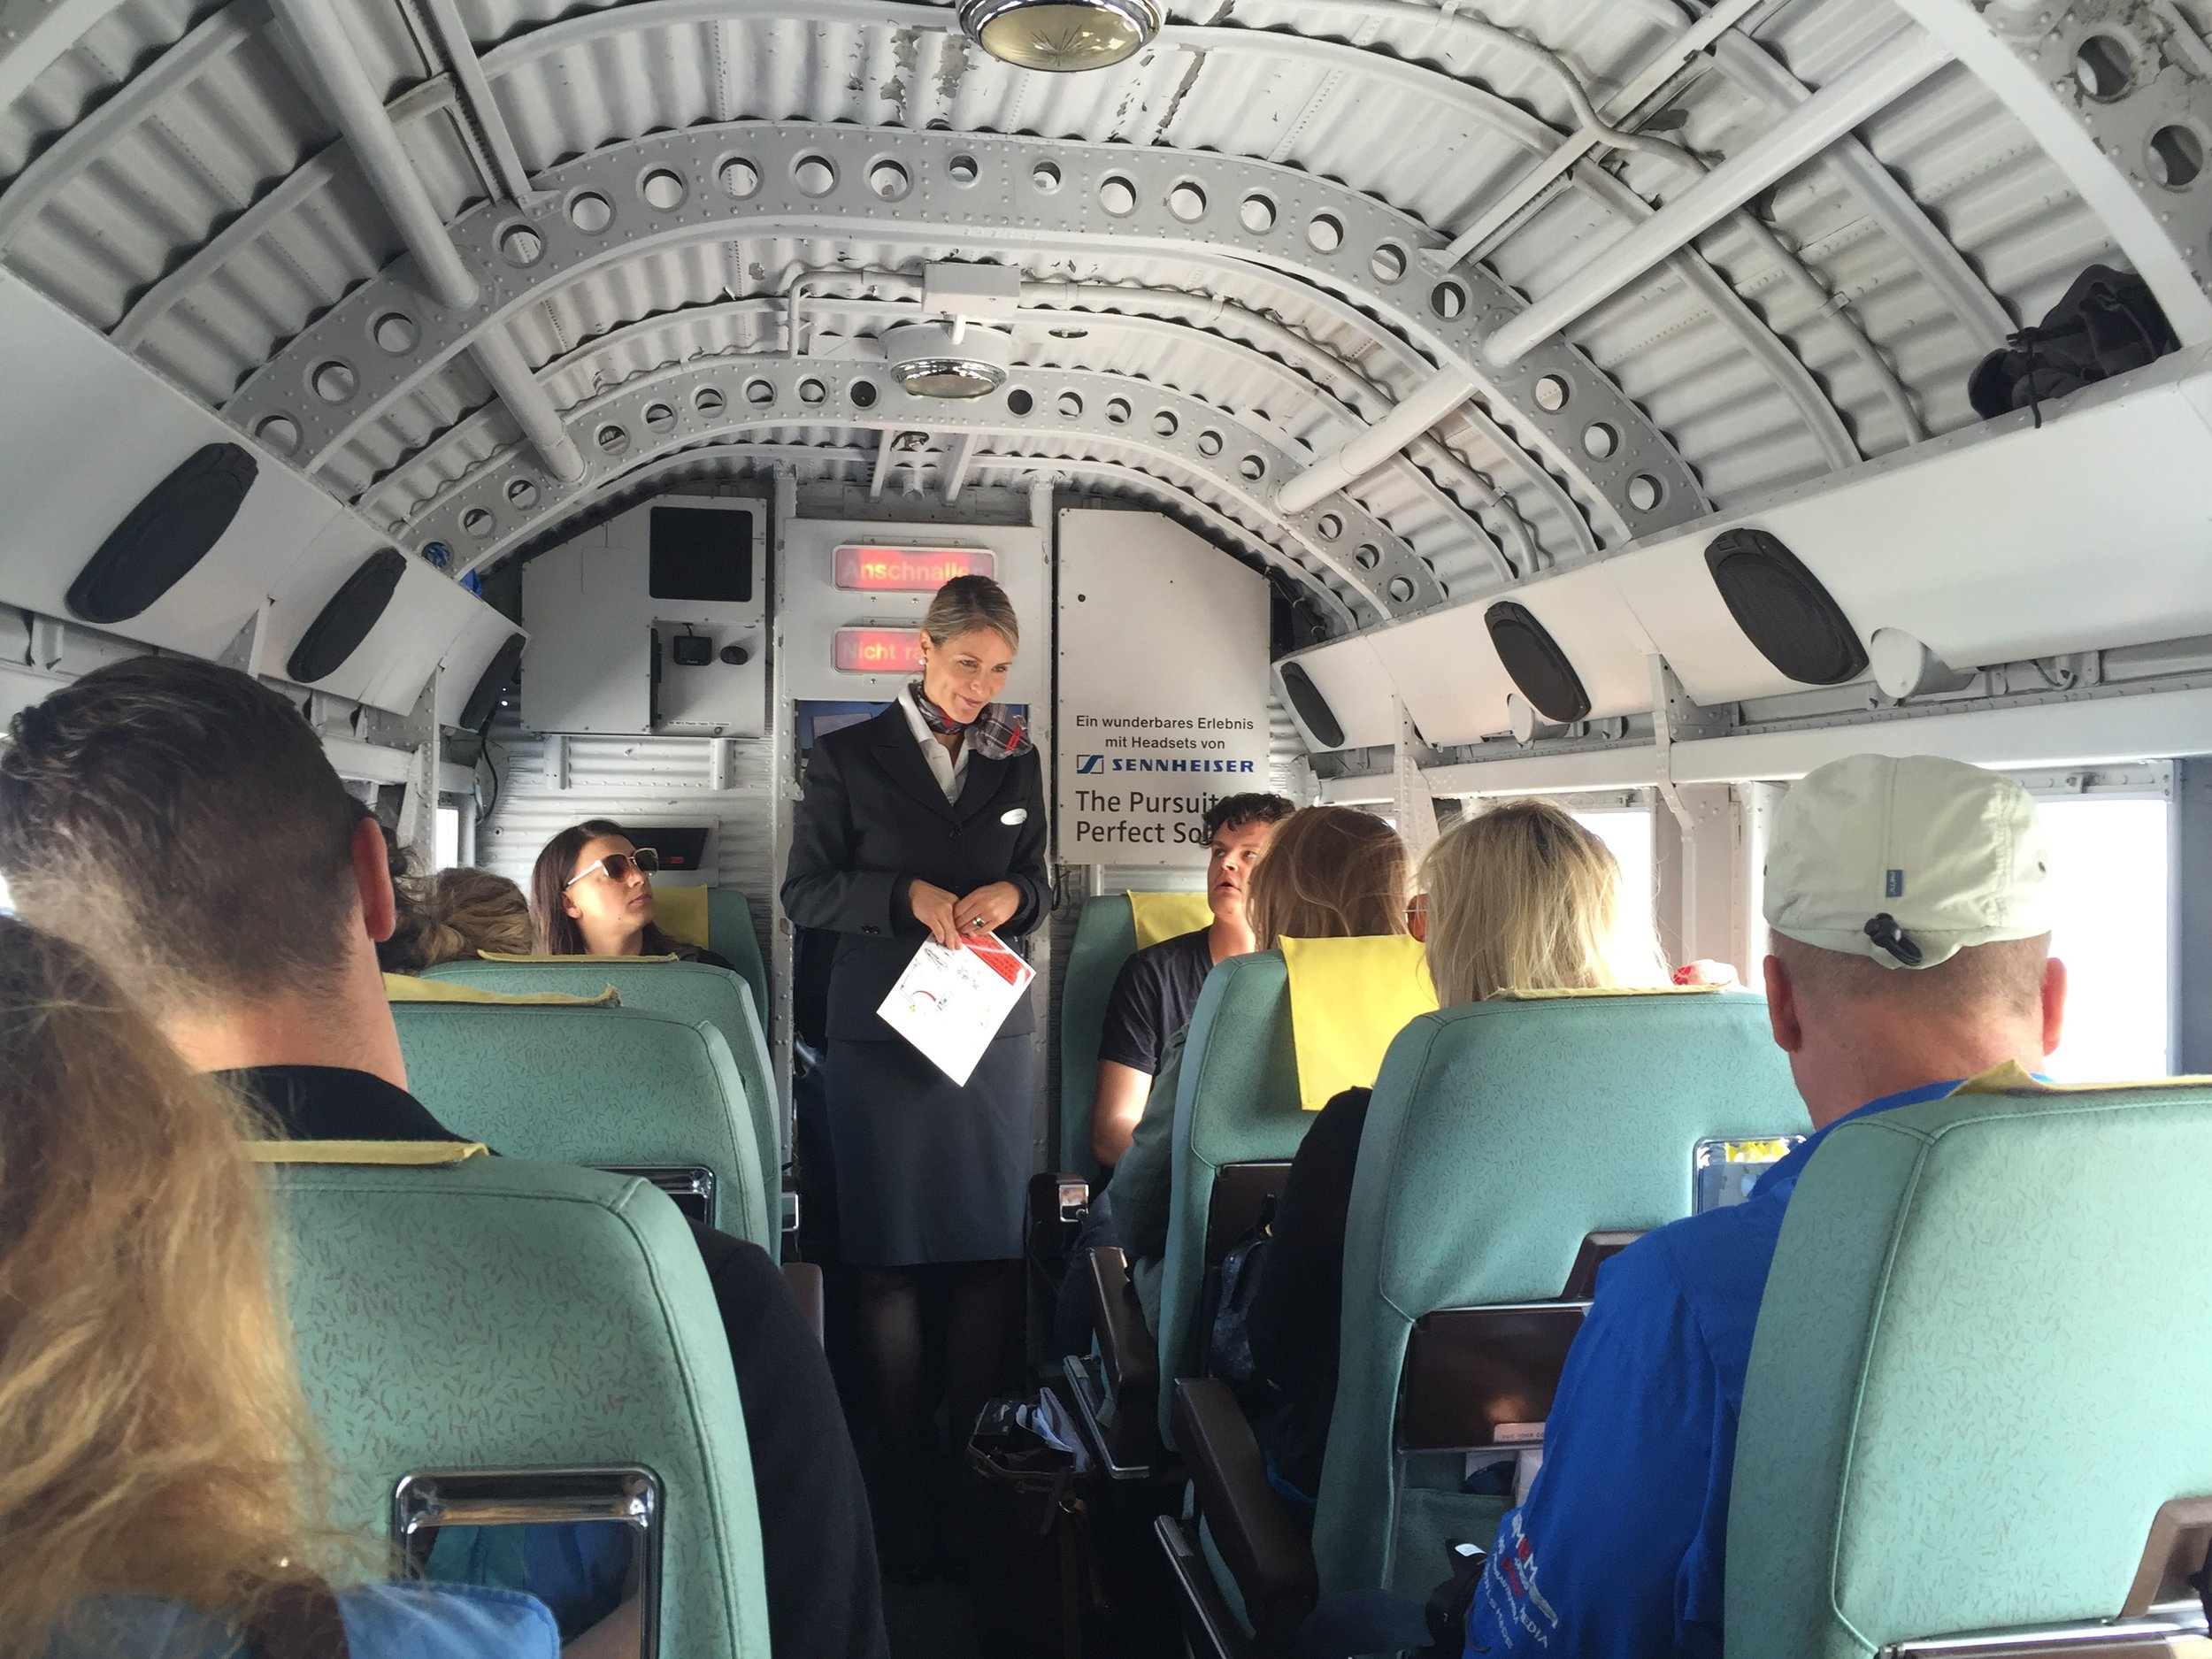 In case you were wondering, here's how the cabin looks like and, yes, just like on any other airliner, there is a flight attendant too